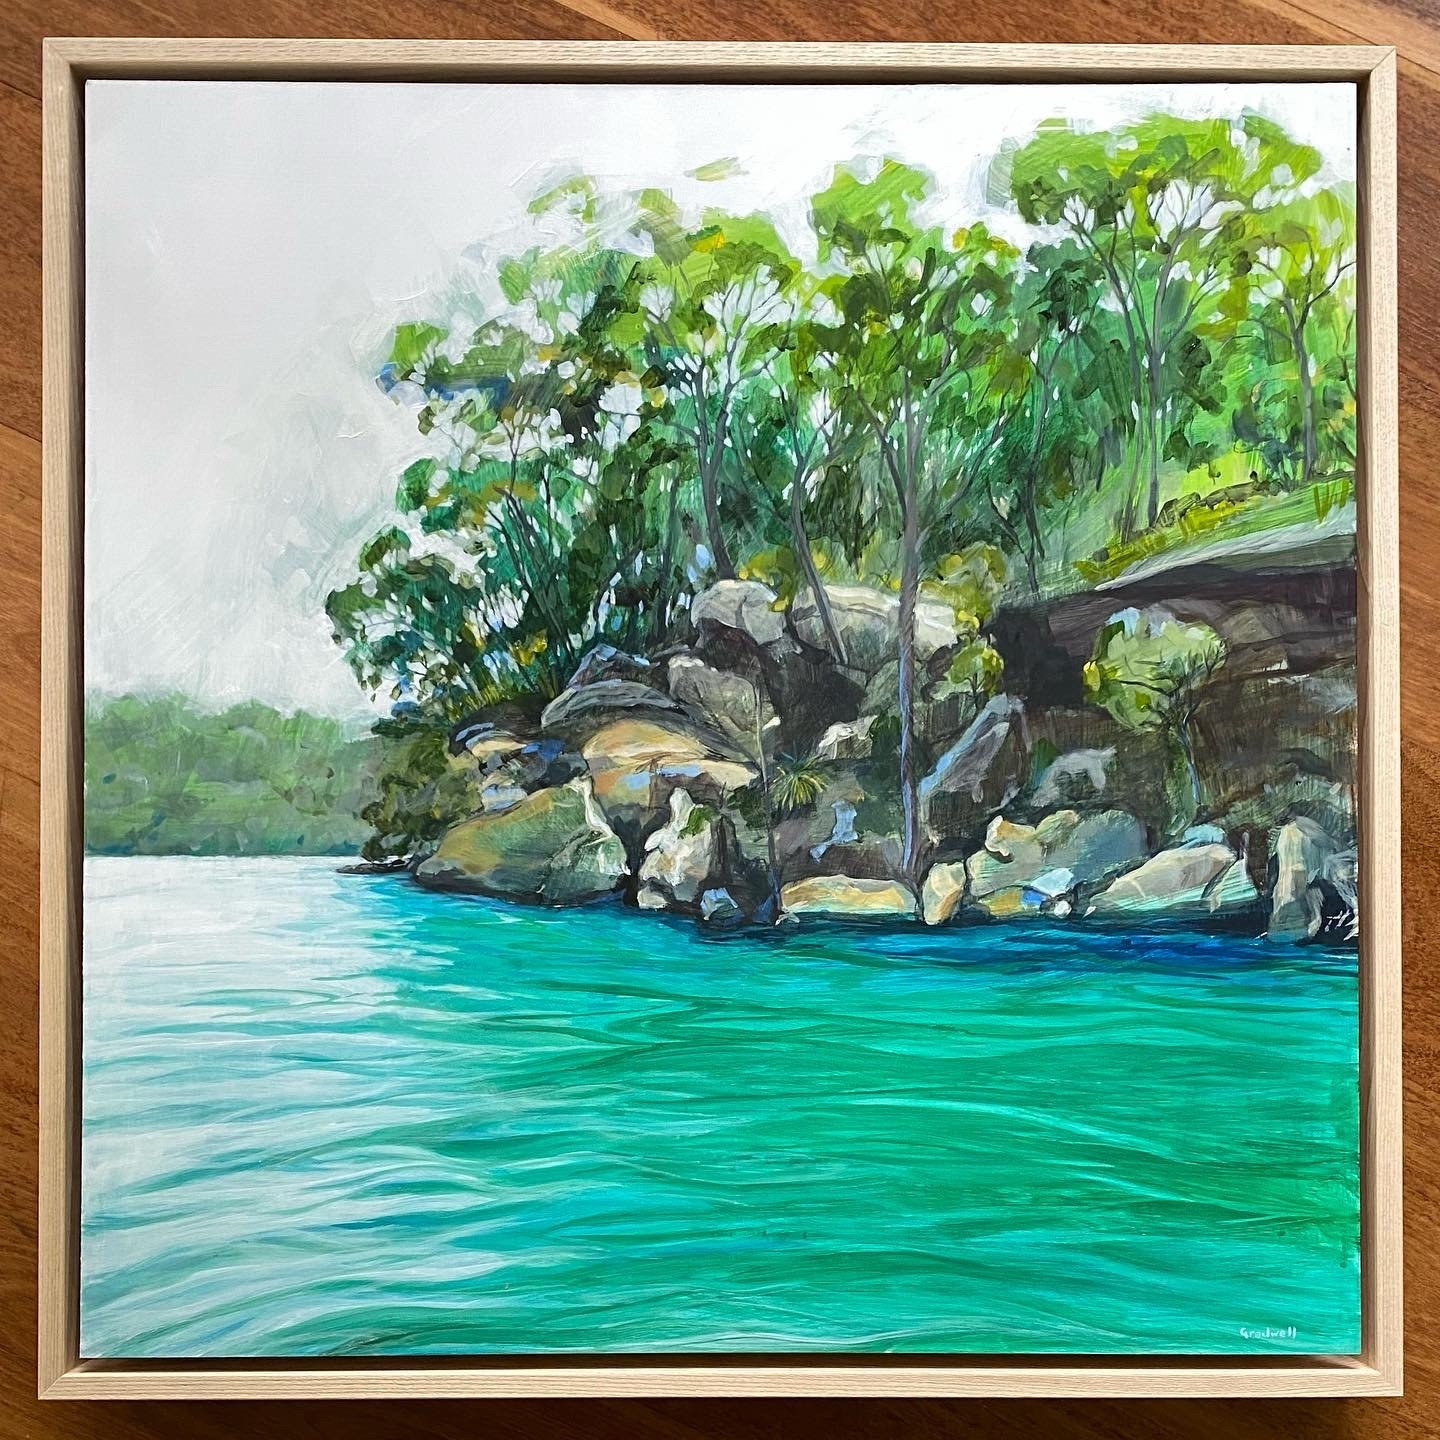 Shades of green in the trees and in the water